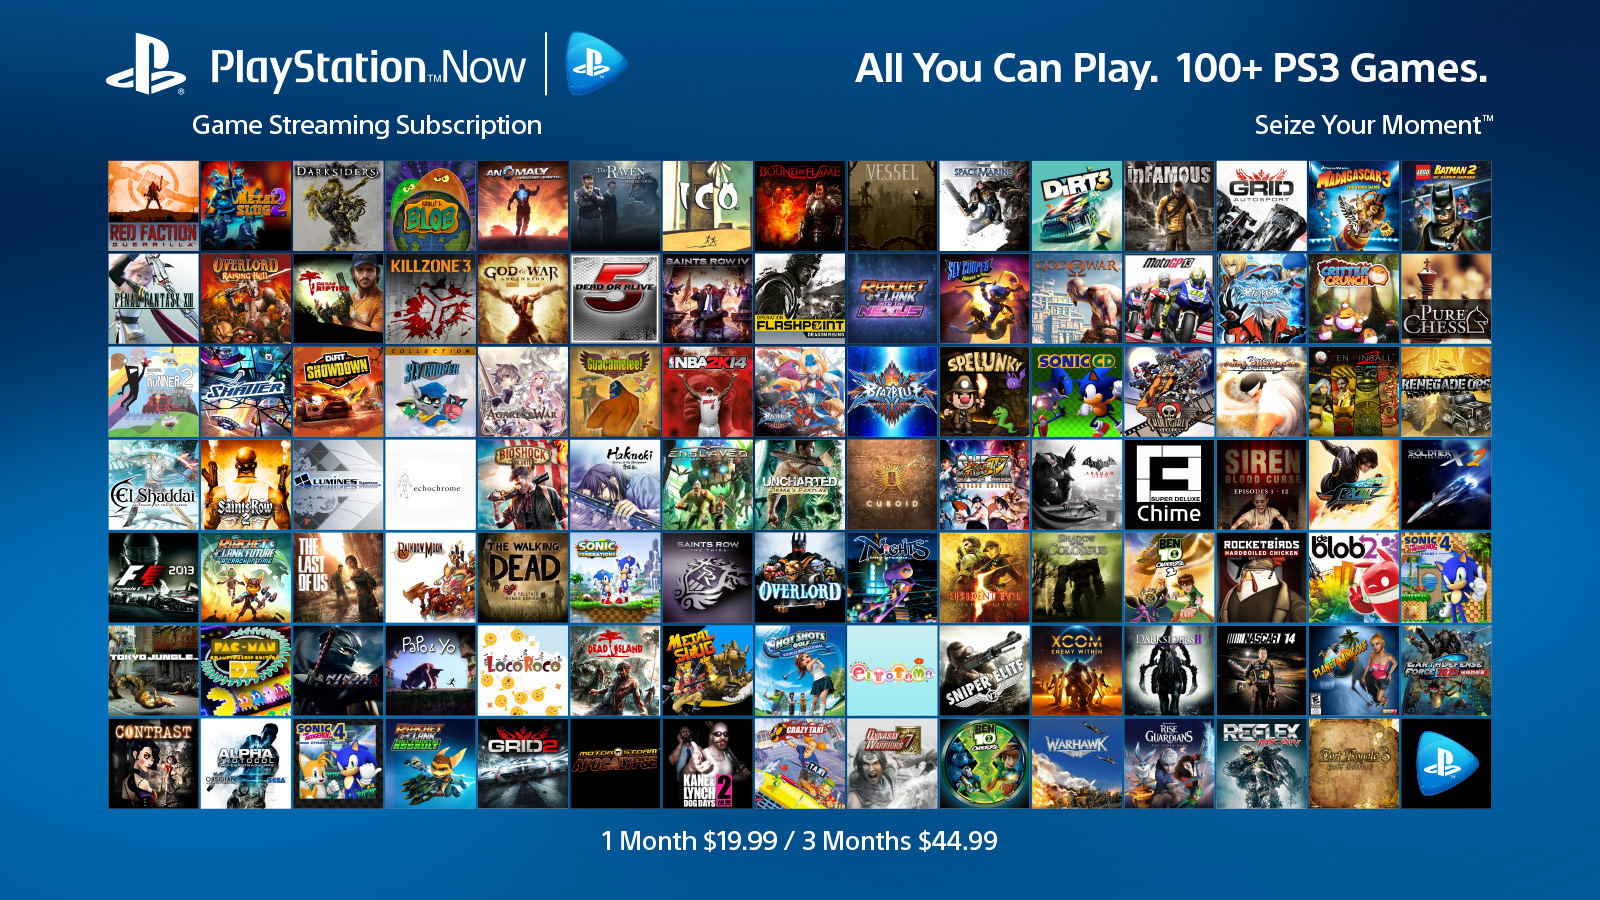 Playstation 1 Games On Ps4 : Playstation now subscription program hitting ps with over